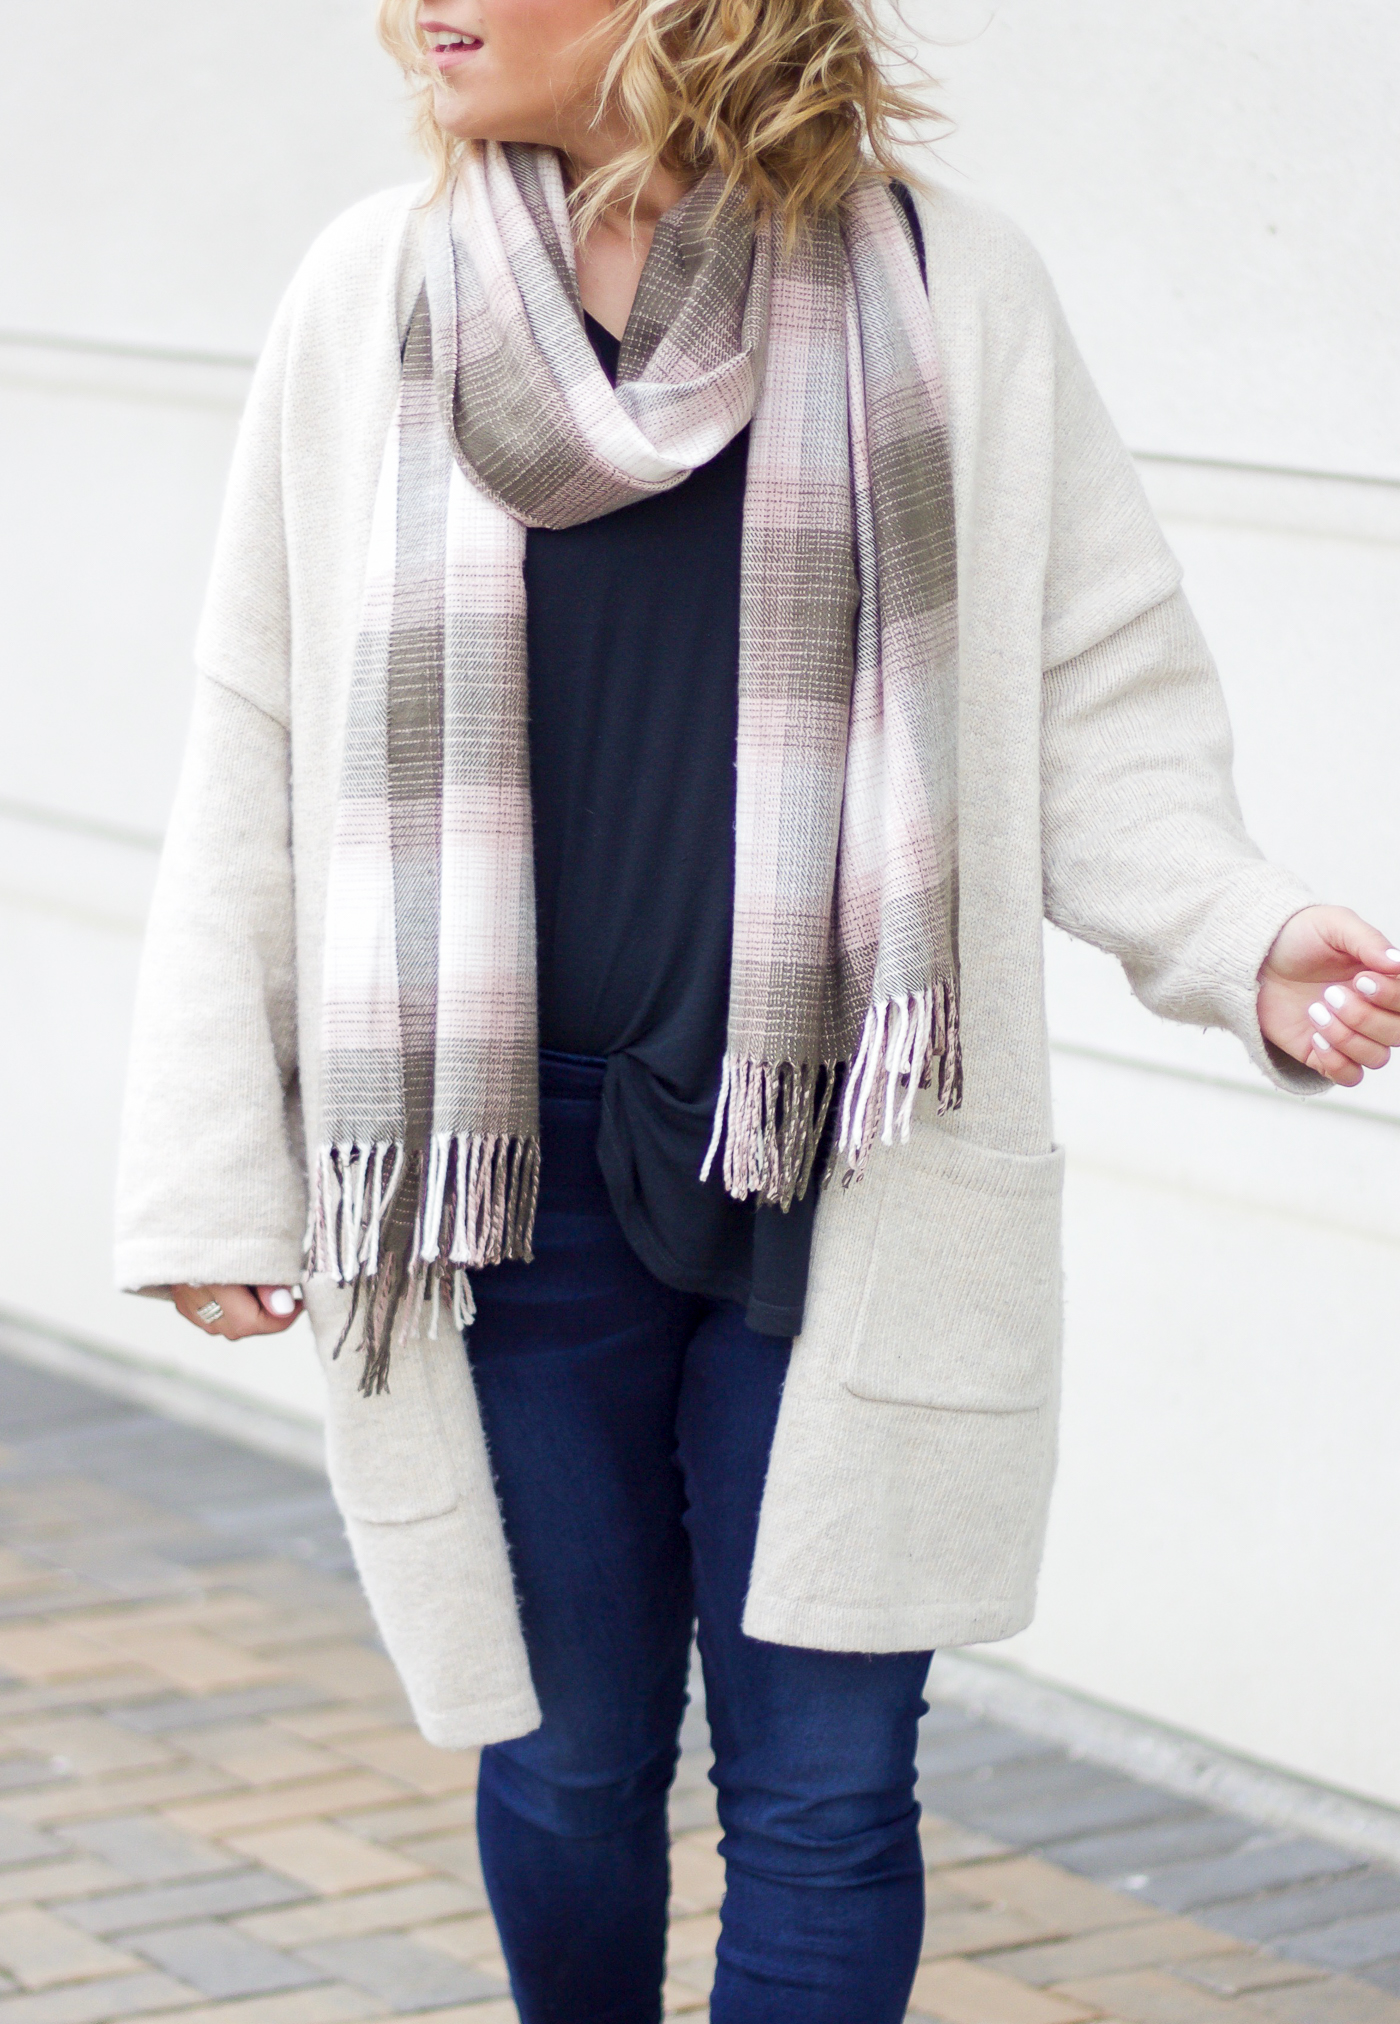 Toronto fashion blogger is wearing an oversized cardigan with pockets from The Gap